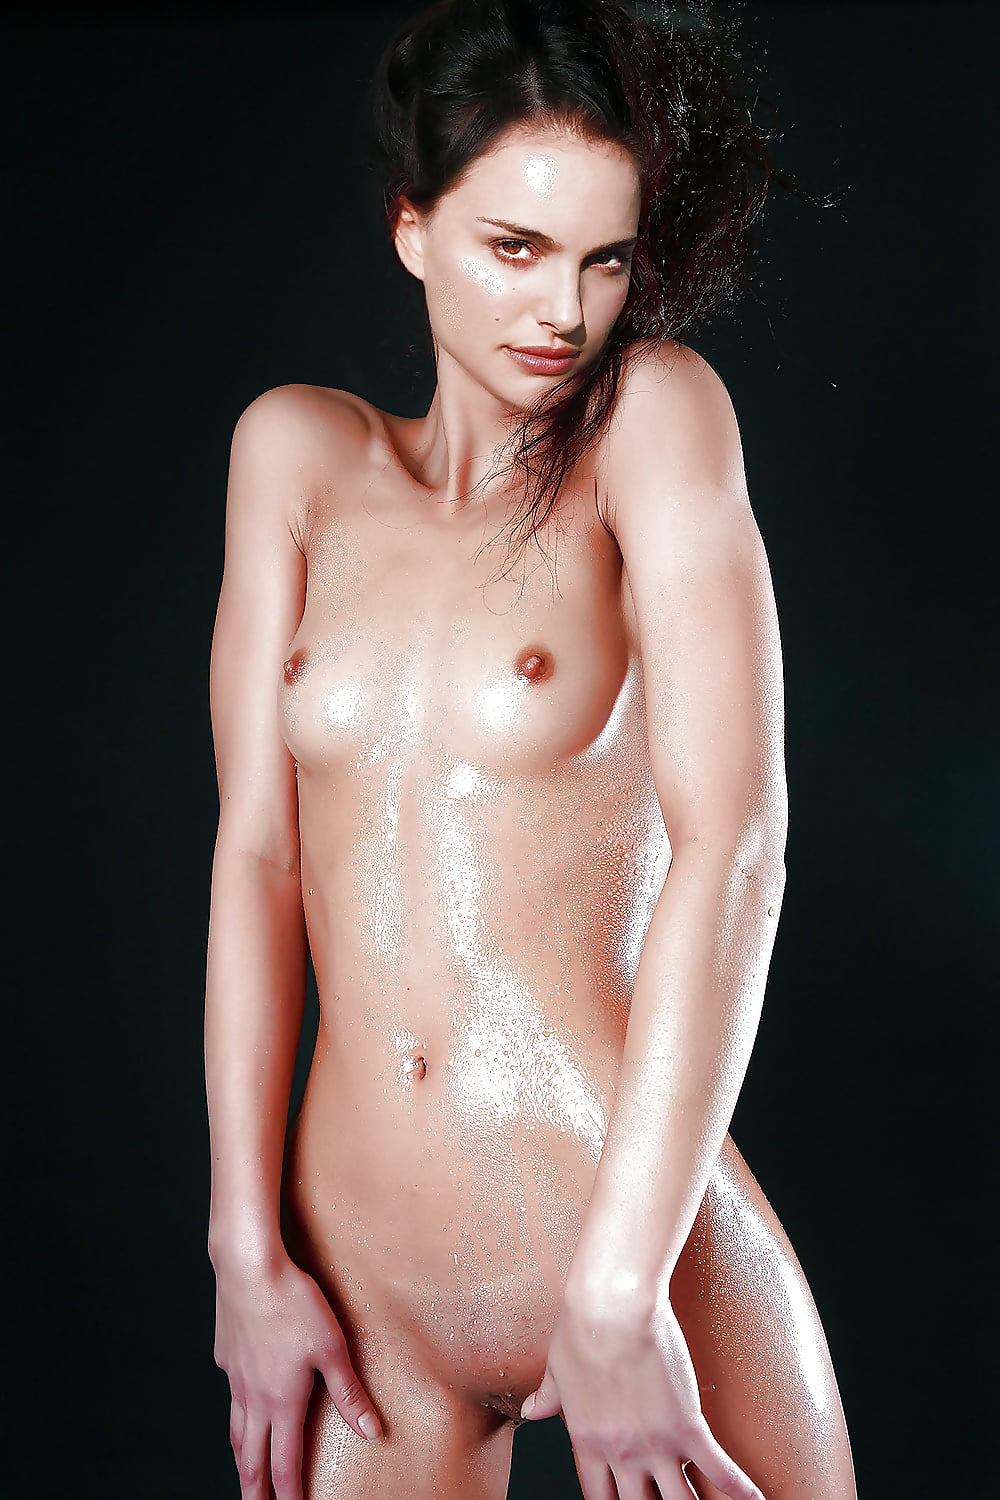 natalie-portman-nude-and-erotic